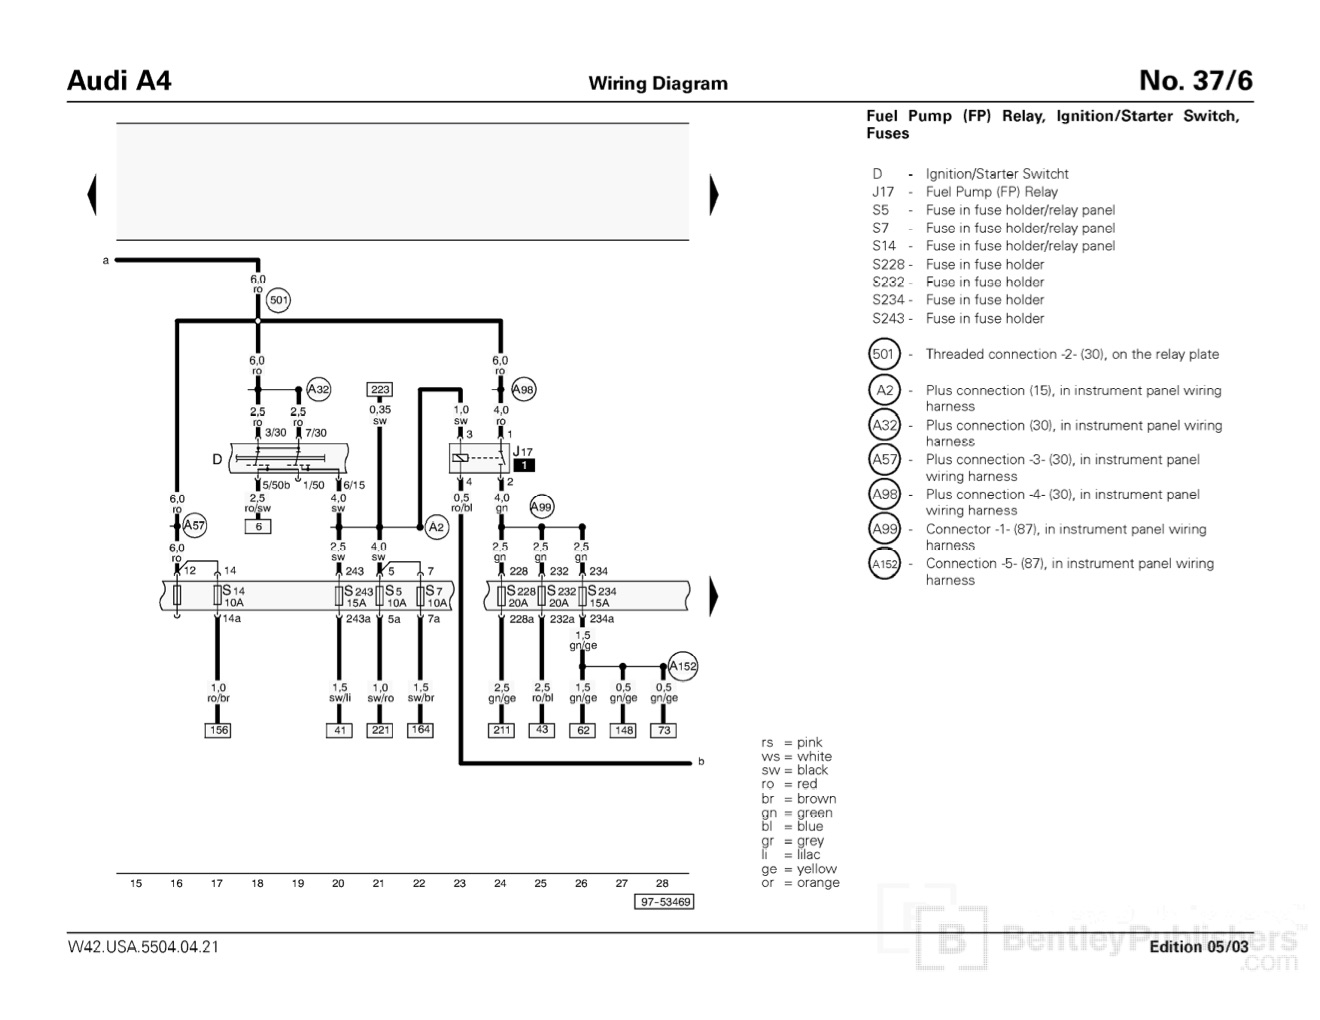 E30 Fuse Box Diagram